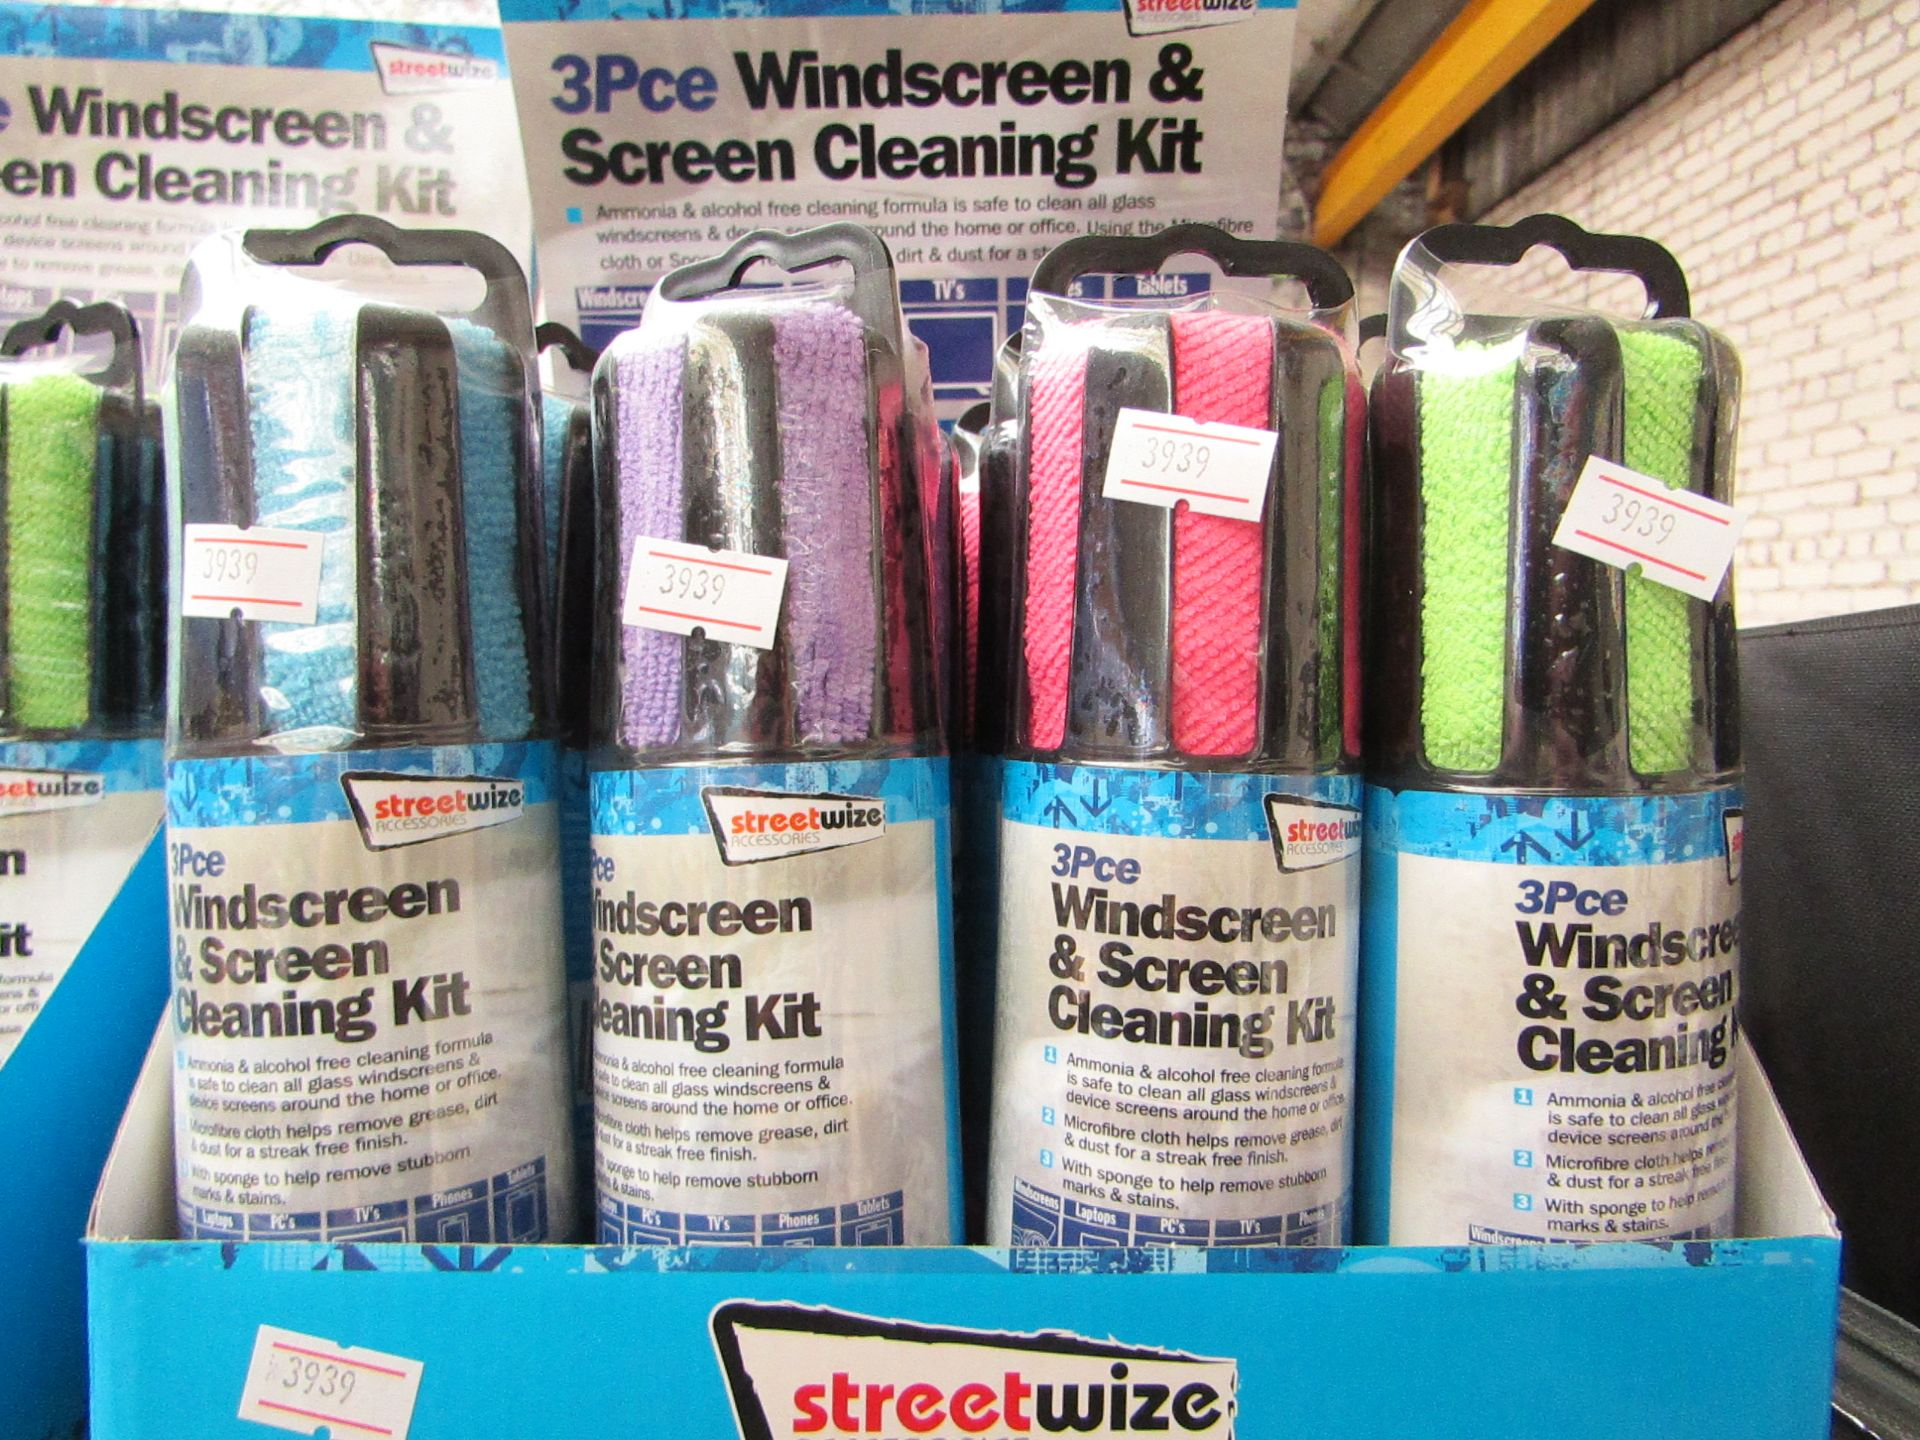 Lot 33 - 4 X 3 PC Windscreen & Screen Cleaning Kits, all new & packaged